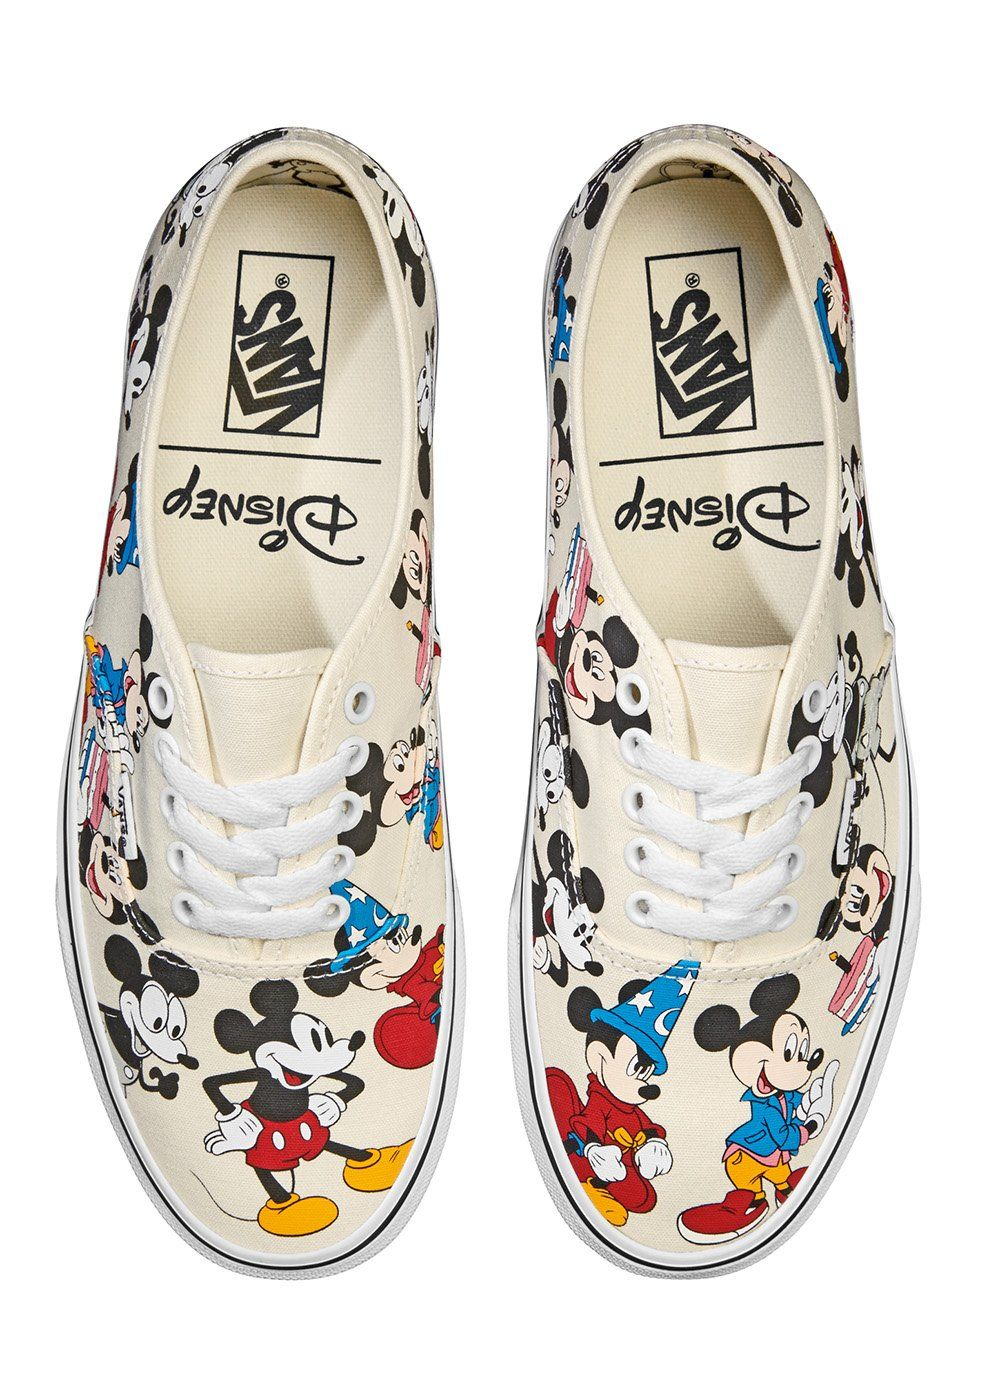 a5e2f4fc1f Vans Disney Authentic Mickey s Birthday - Mens Large Sizes